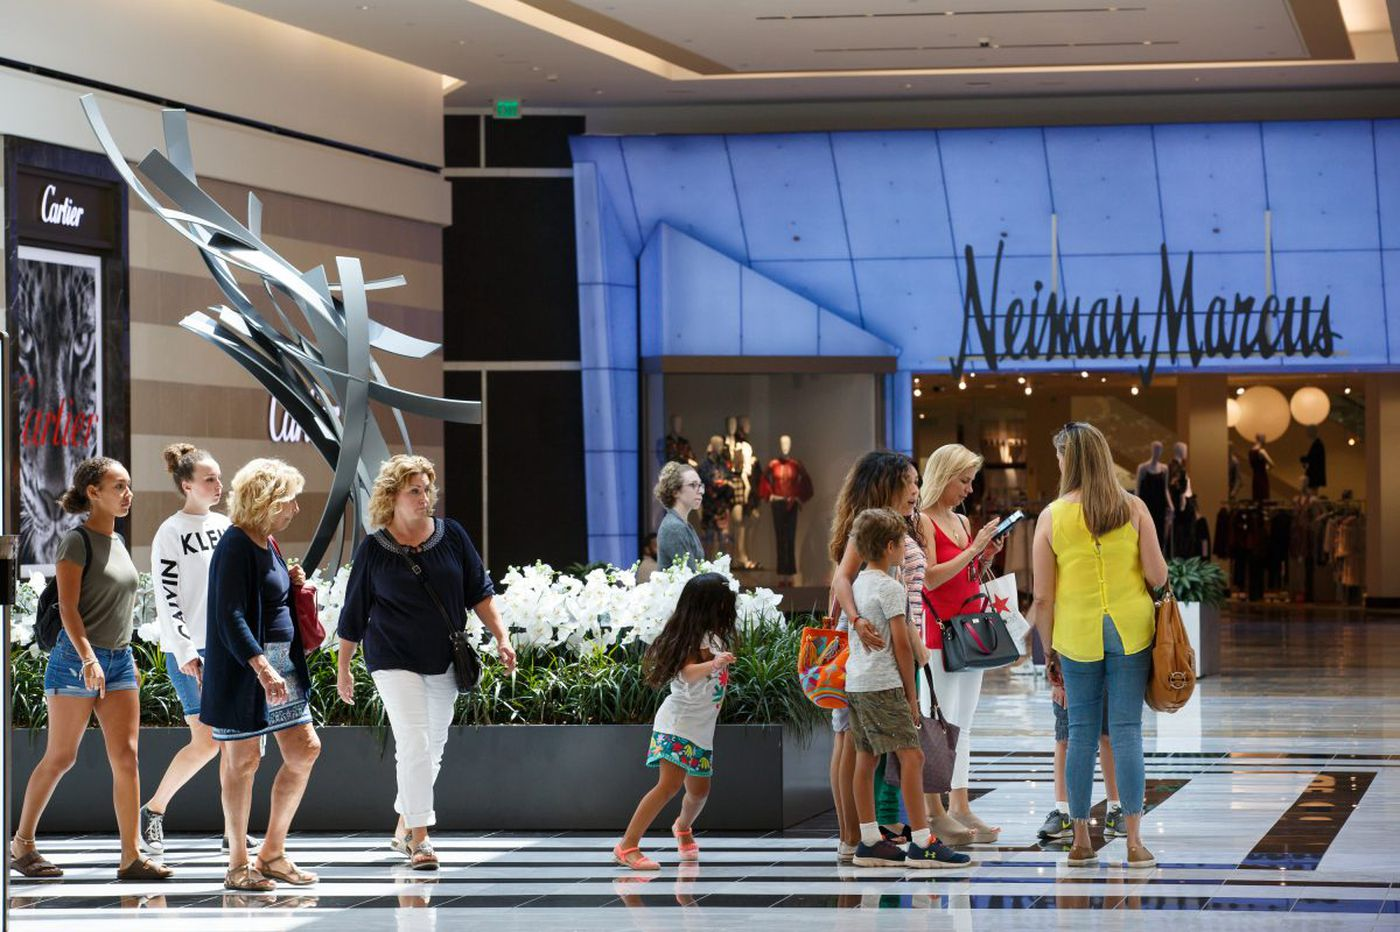 Living in luxury: New wing at KoP Mall a hit